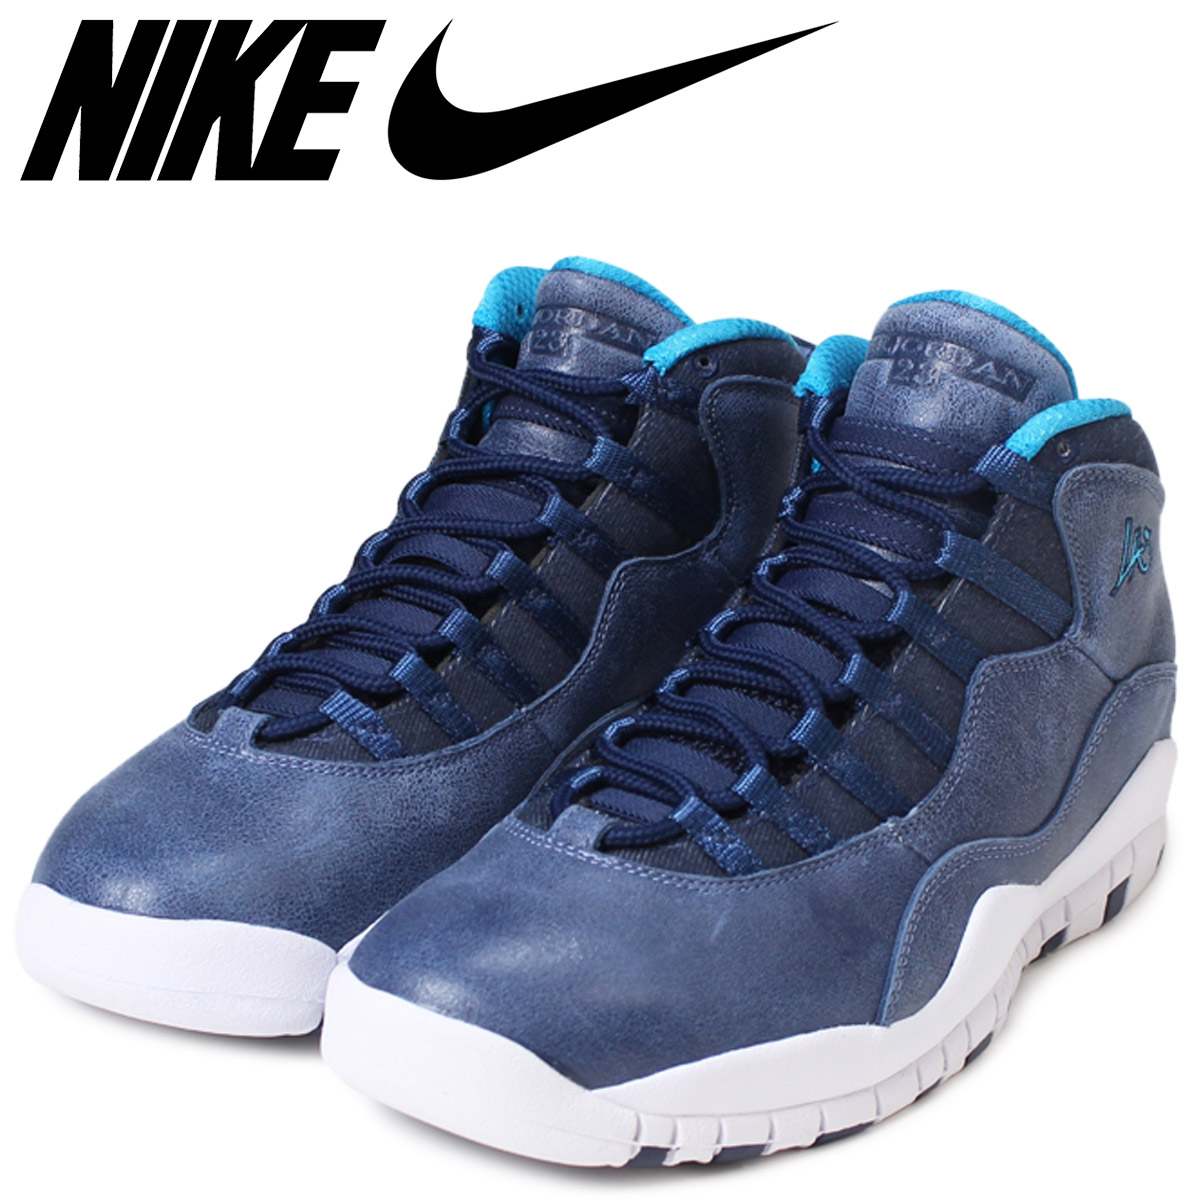 super popular d084d 3b71f NIKE Nike Air Jordan 10 nostalgic sneakers AIR JORDAN 10 RETRO LOS ANGELES  men 310,805-404 Dodgers navy